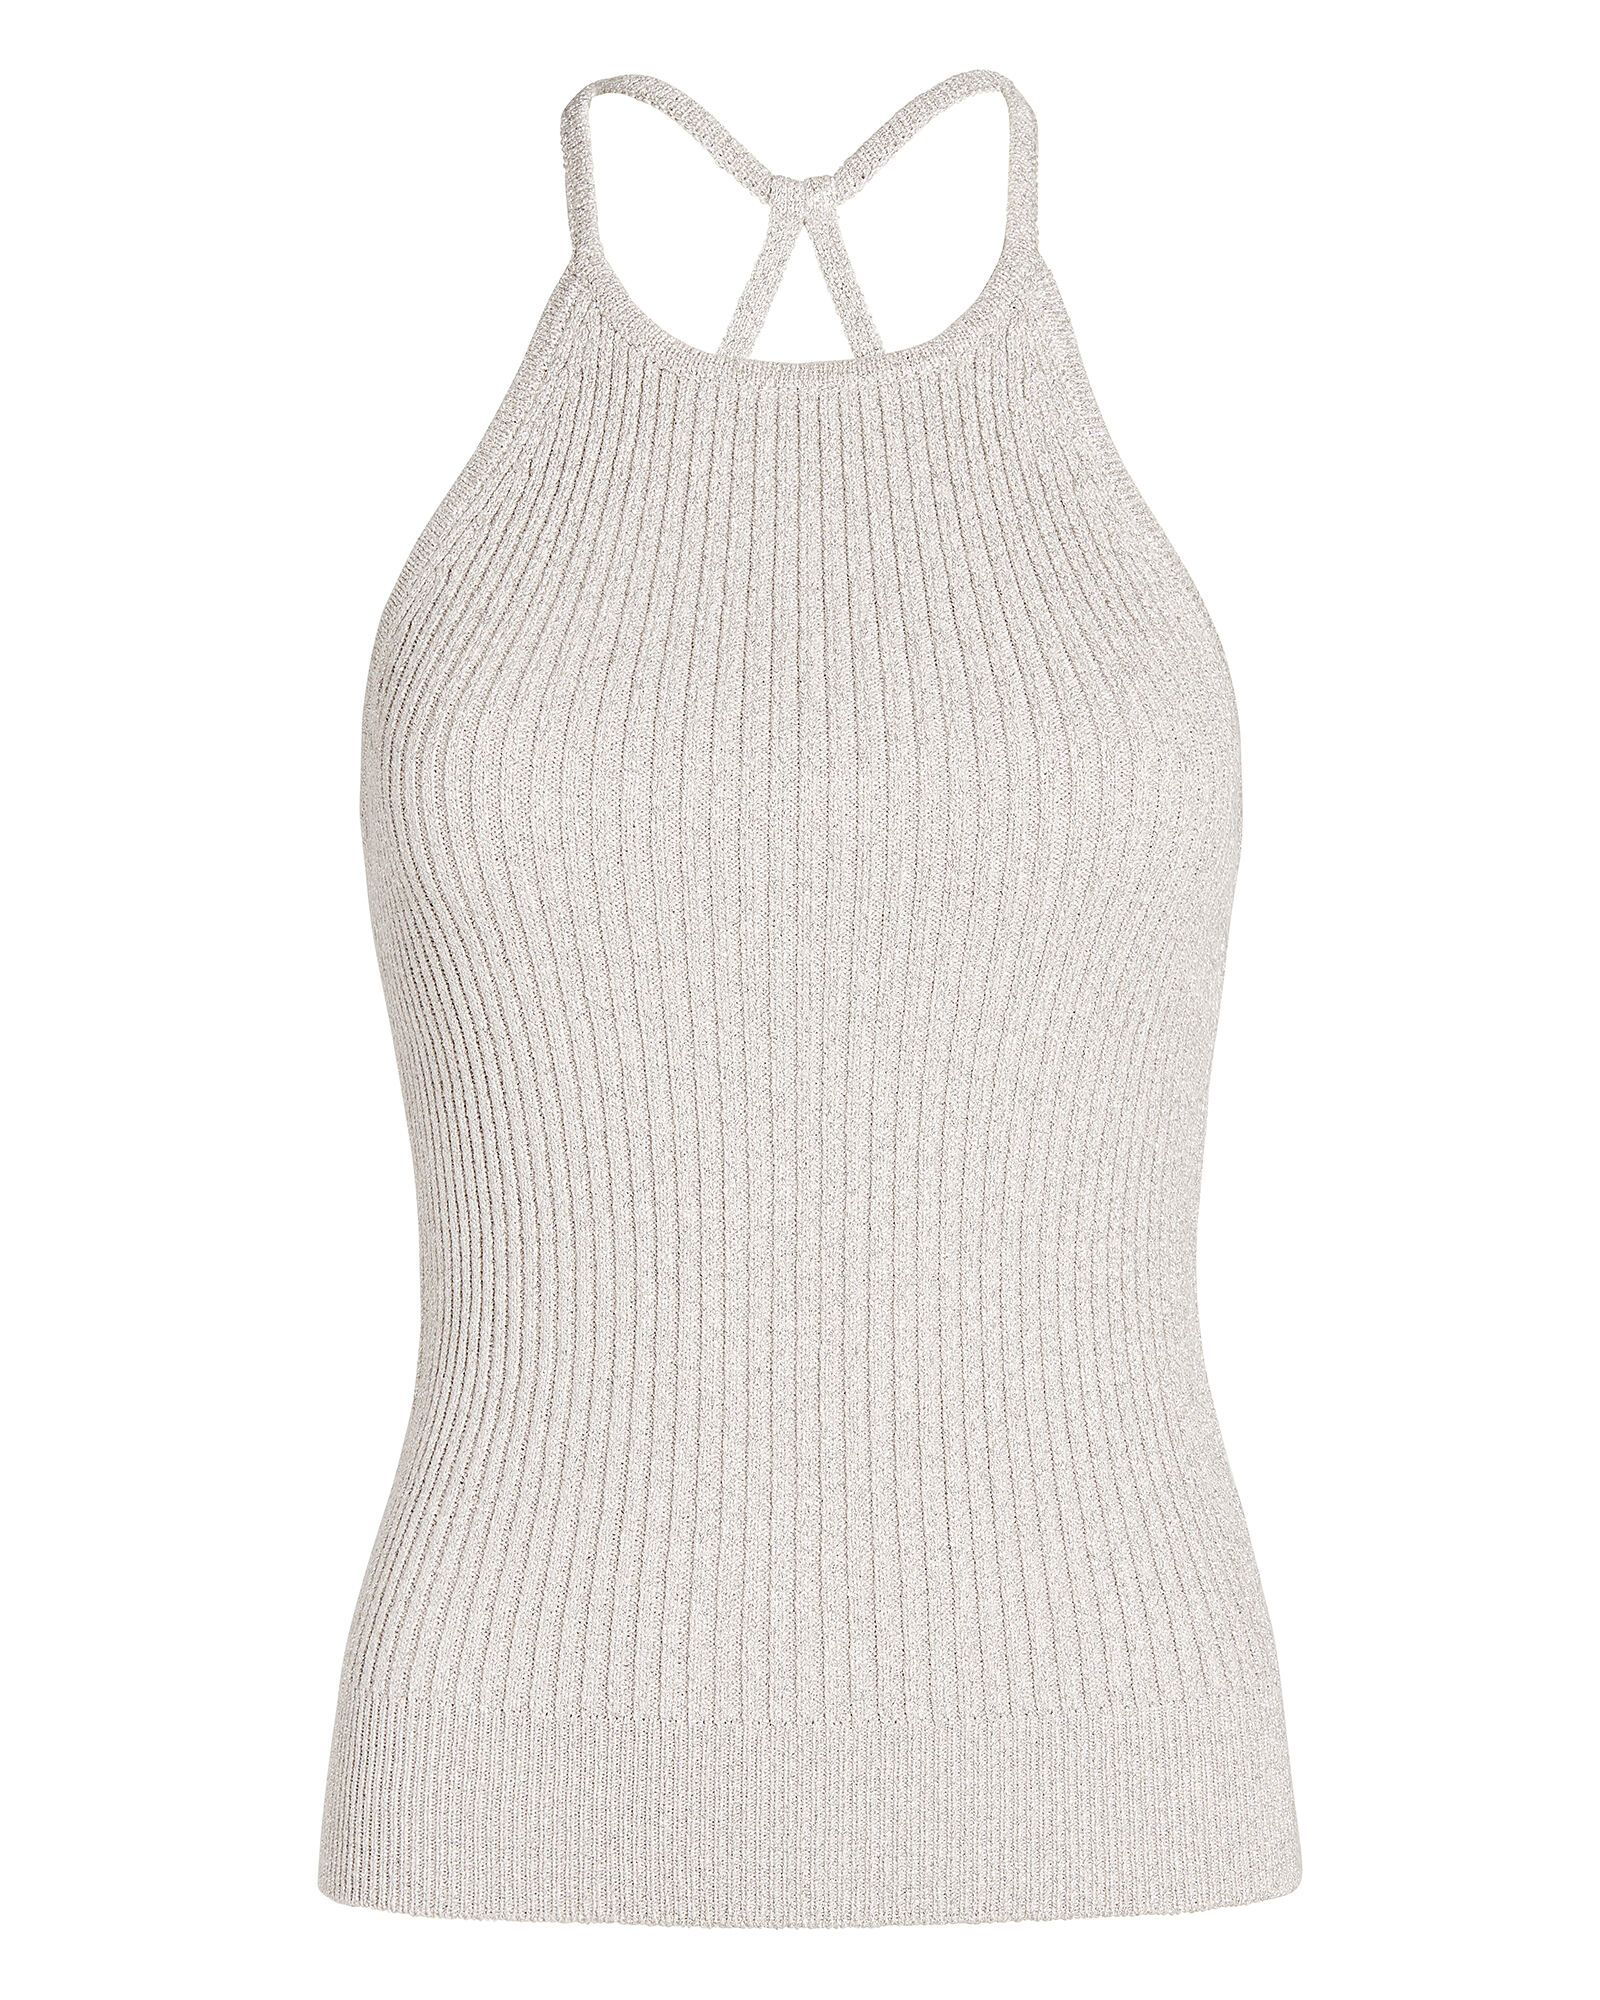 Madison Lurex Tank Top, SILVER, hi-res